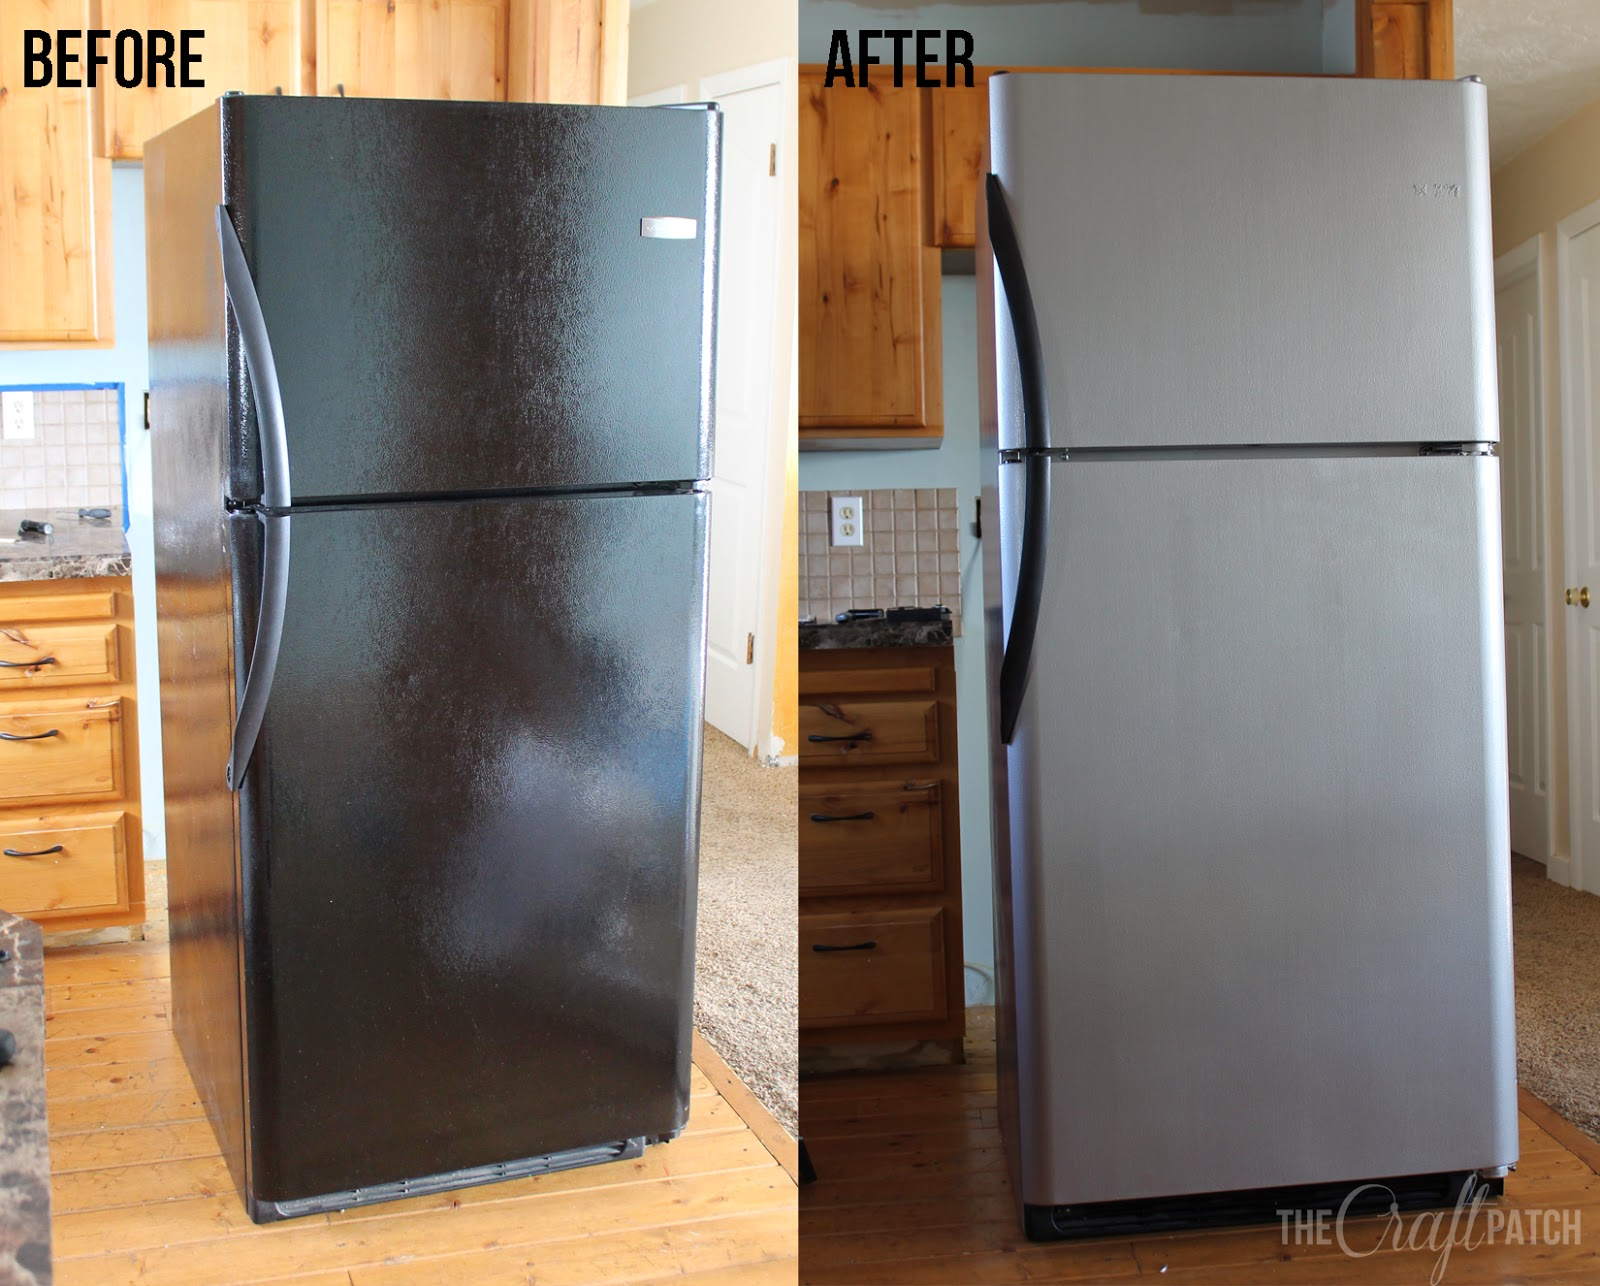 ... Patch: I Painted My Appliances!!! (Liquid Stainless Steel Review